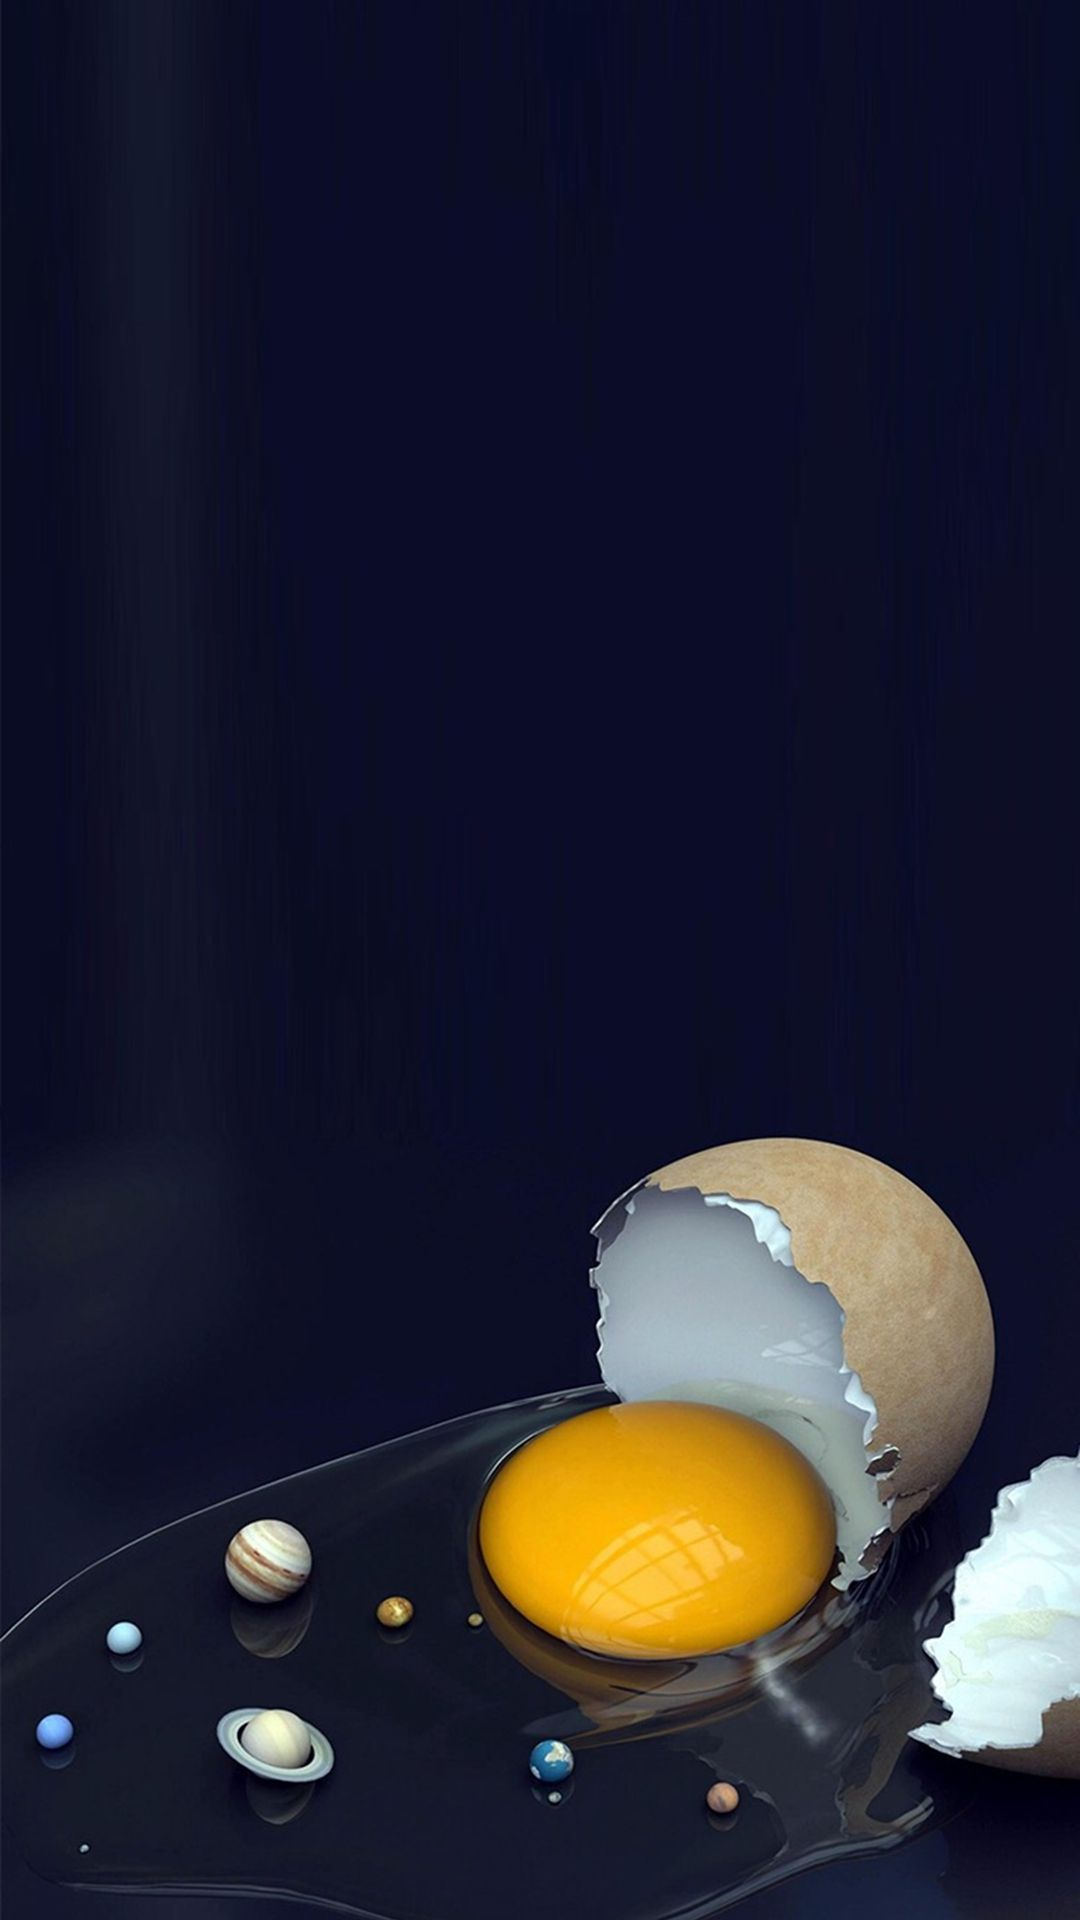 1080x1920 Solar System Broken Egg iPhone 8 Wallpapers Free Download